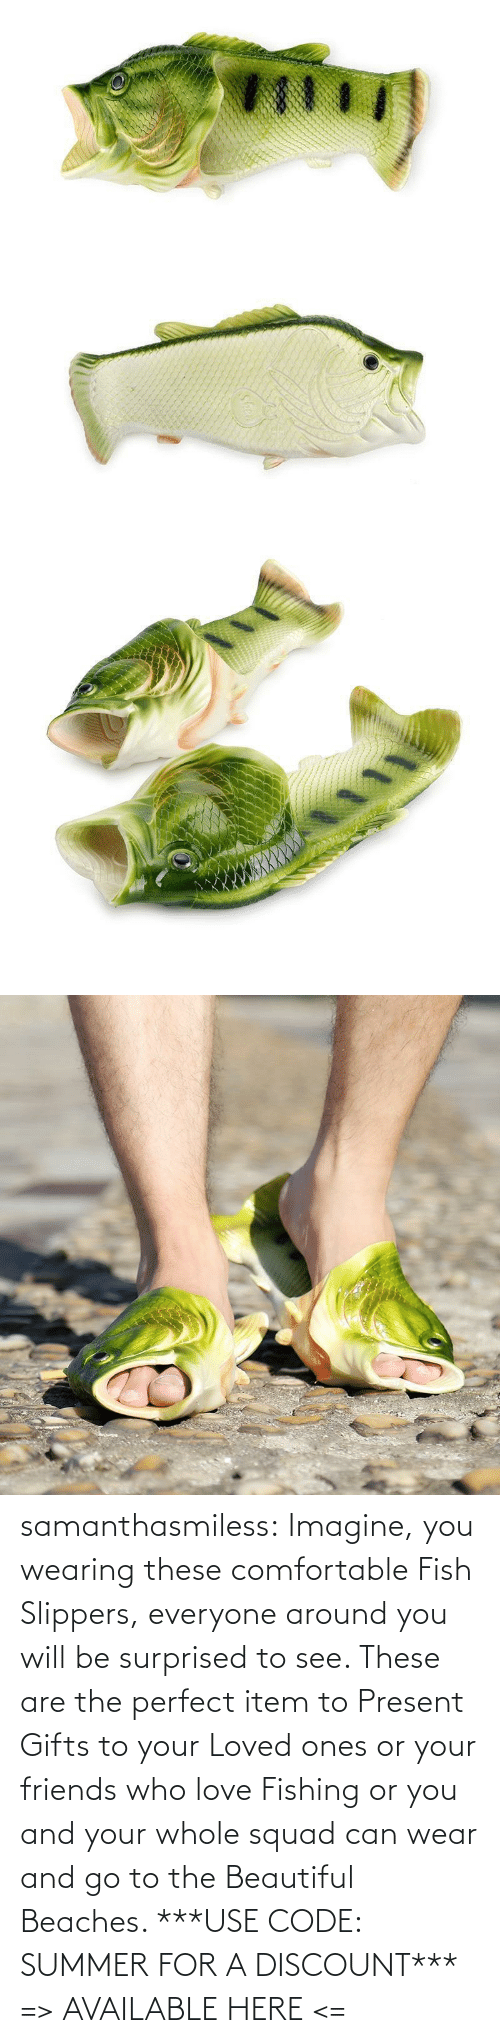 around: samanthasmiless: Imagine, you wearing these comfortable Fish Slippers, everyone around you will be surprised to see. These are the perfect item to Present Gifts to your Loved ones or your friends who love Fishing or you and your whole squad can wear and go to the Beautiful Beaches.  ***USE CODE: SUMMER FOR A DISCOUNT*** => AVAILABLE HERE <=